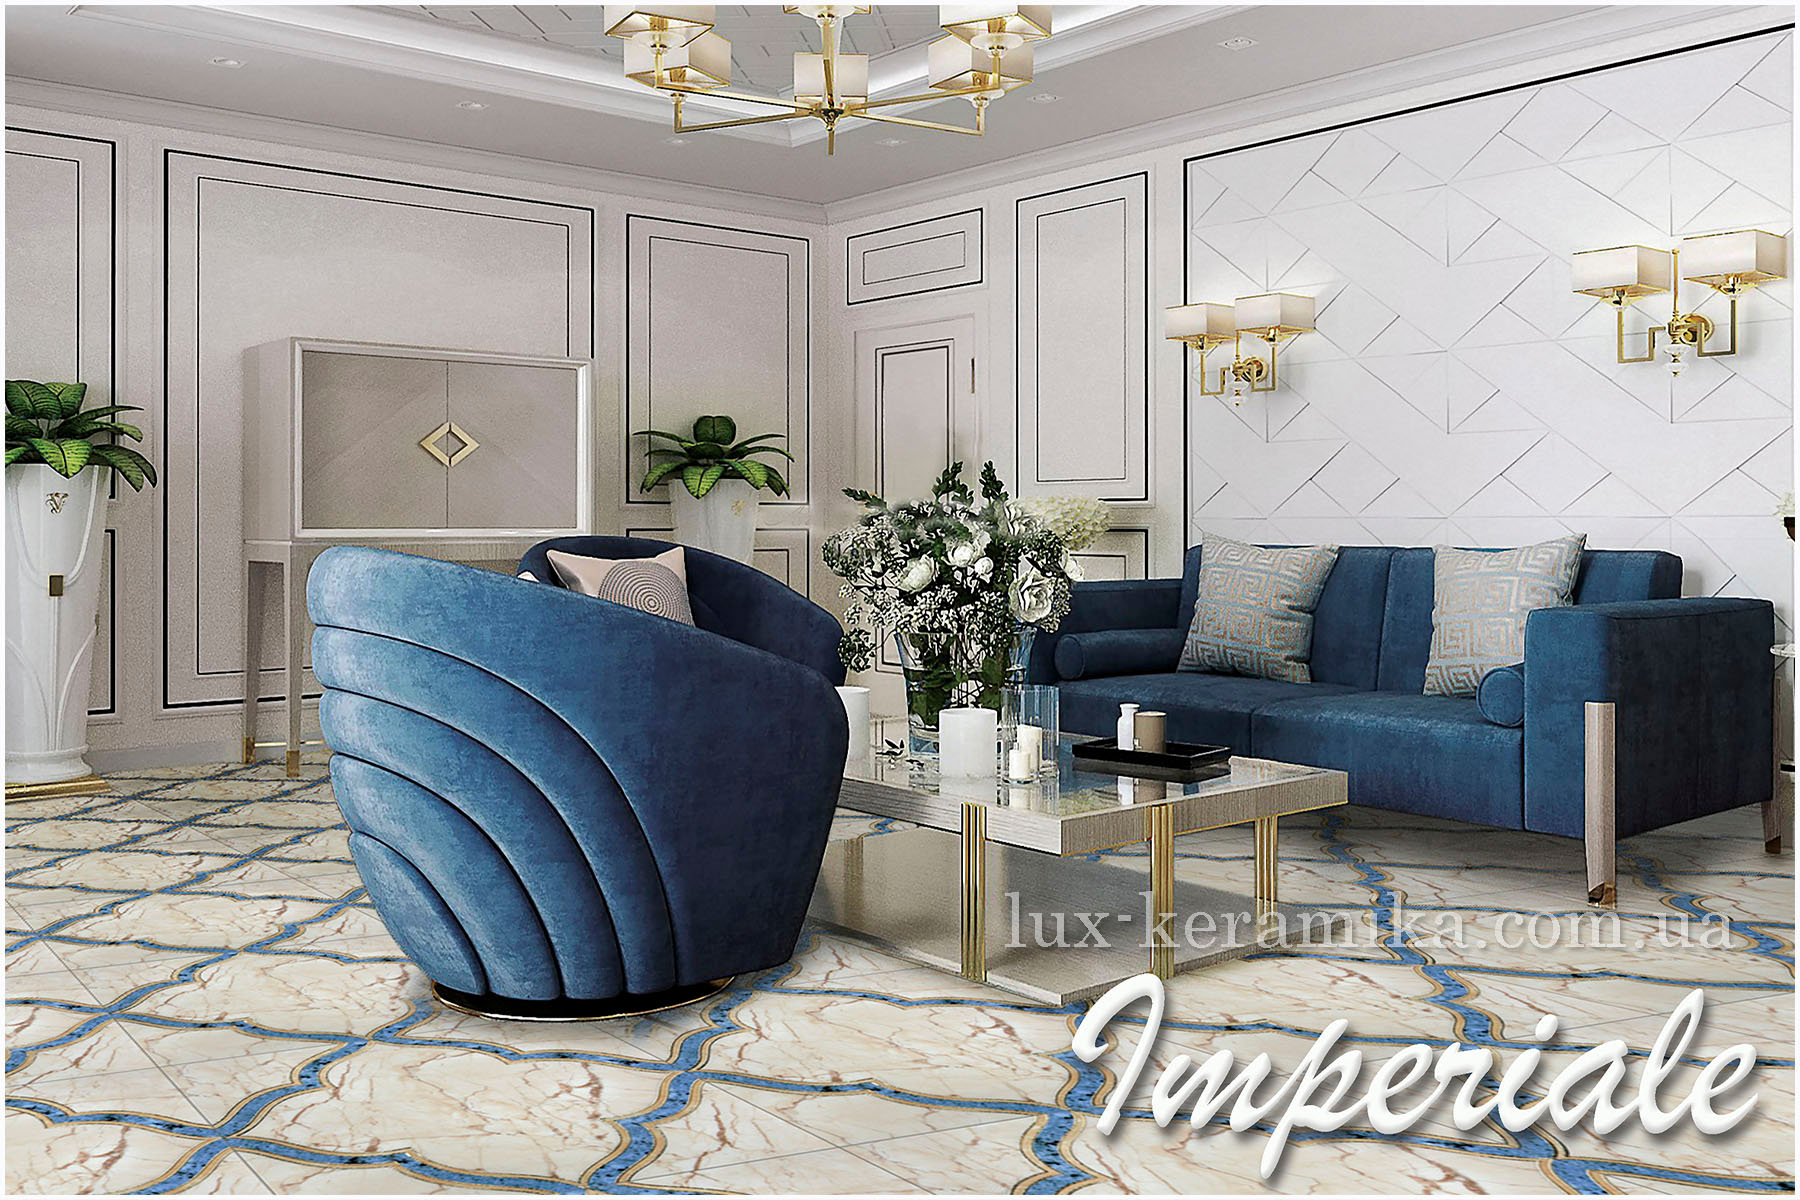 1_110-Imperiale-4